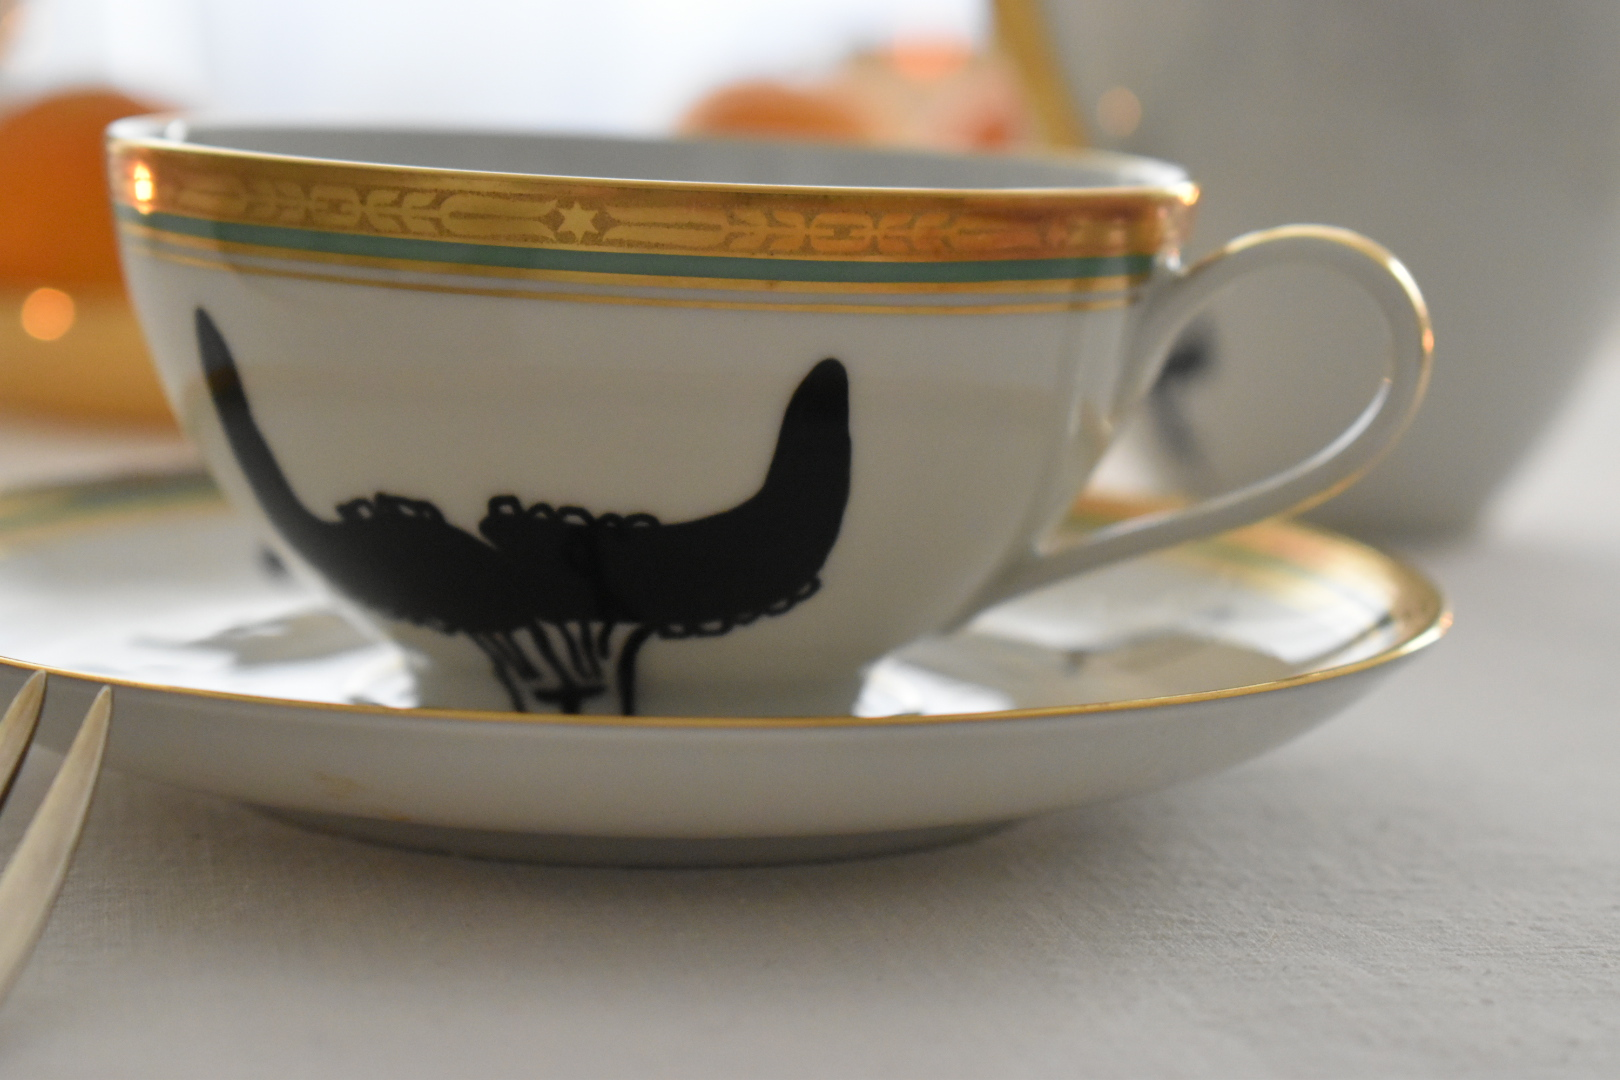 All October I had been working on the porcelain collection and getting it ready for the shop launch set for Nov 4th